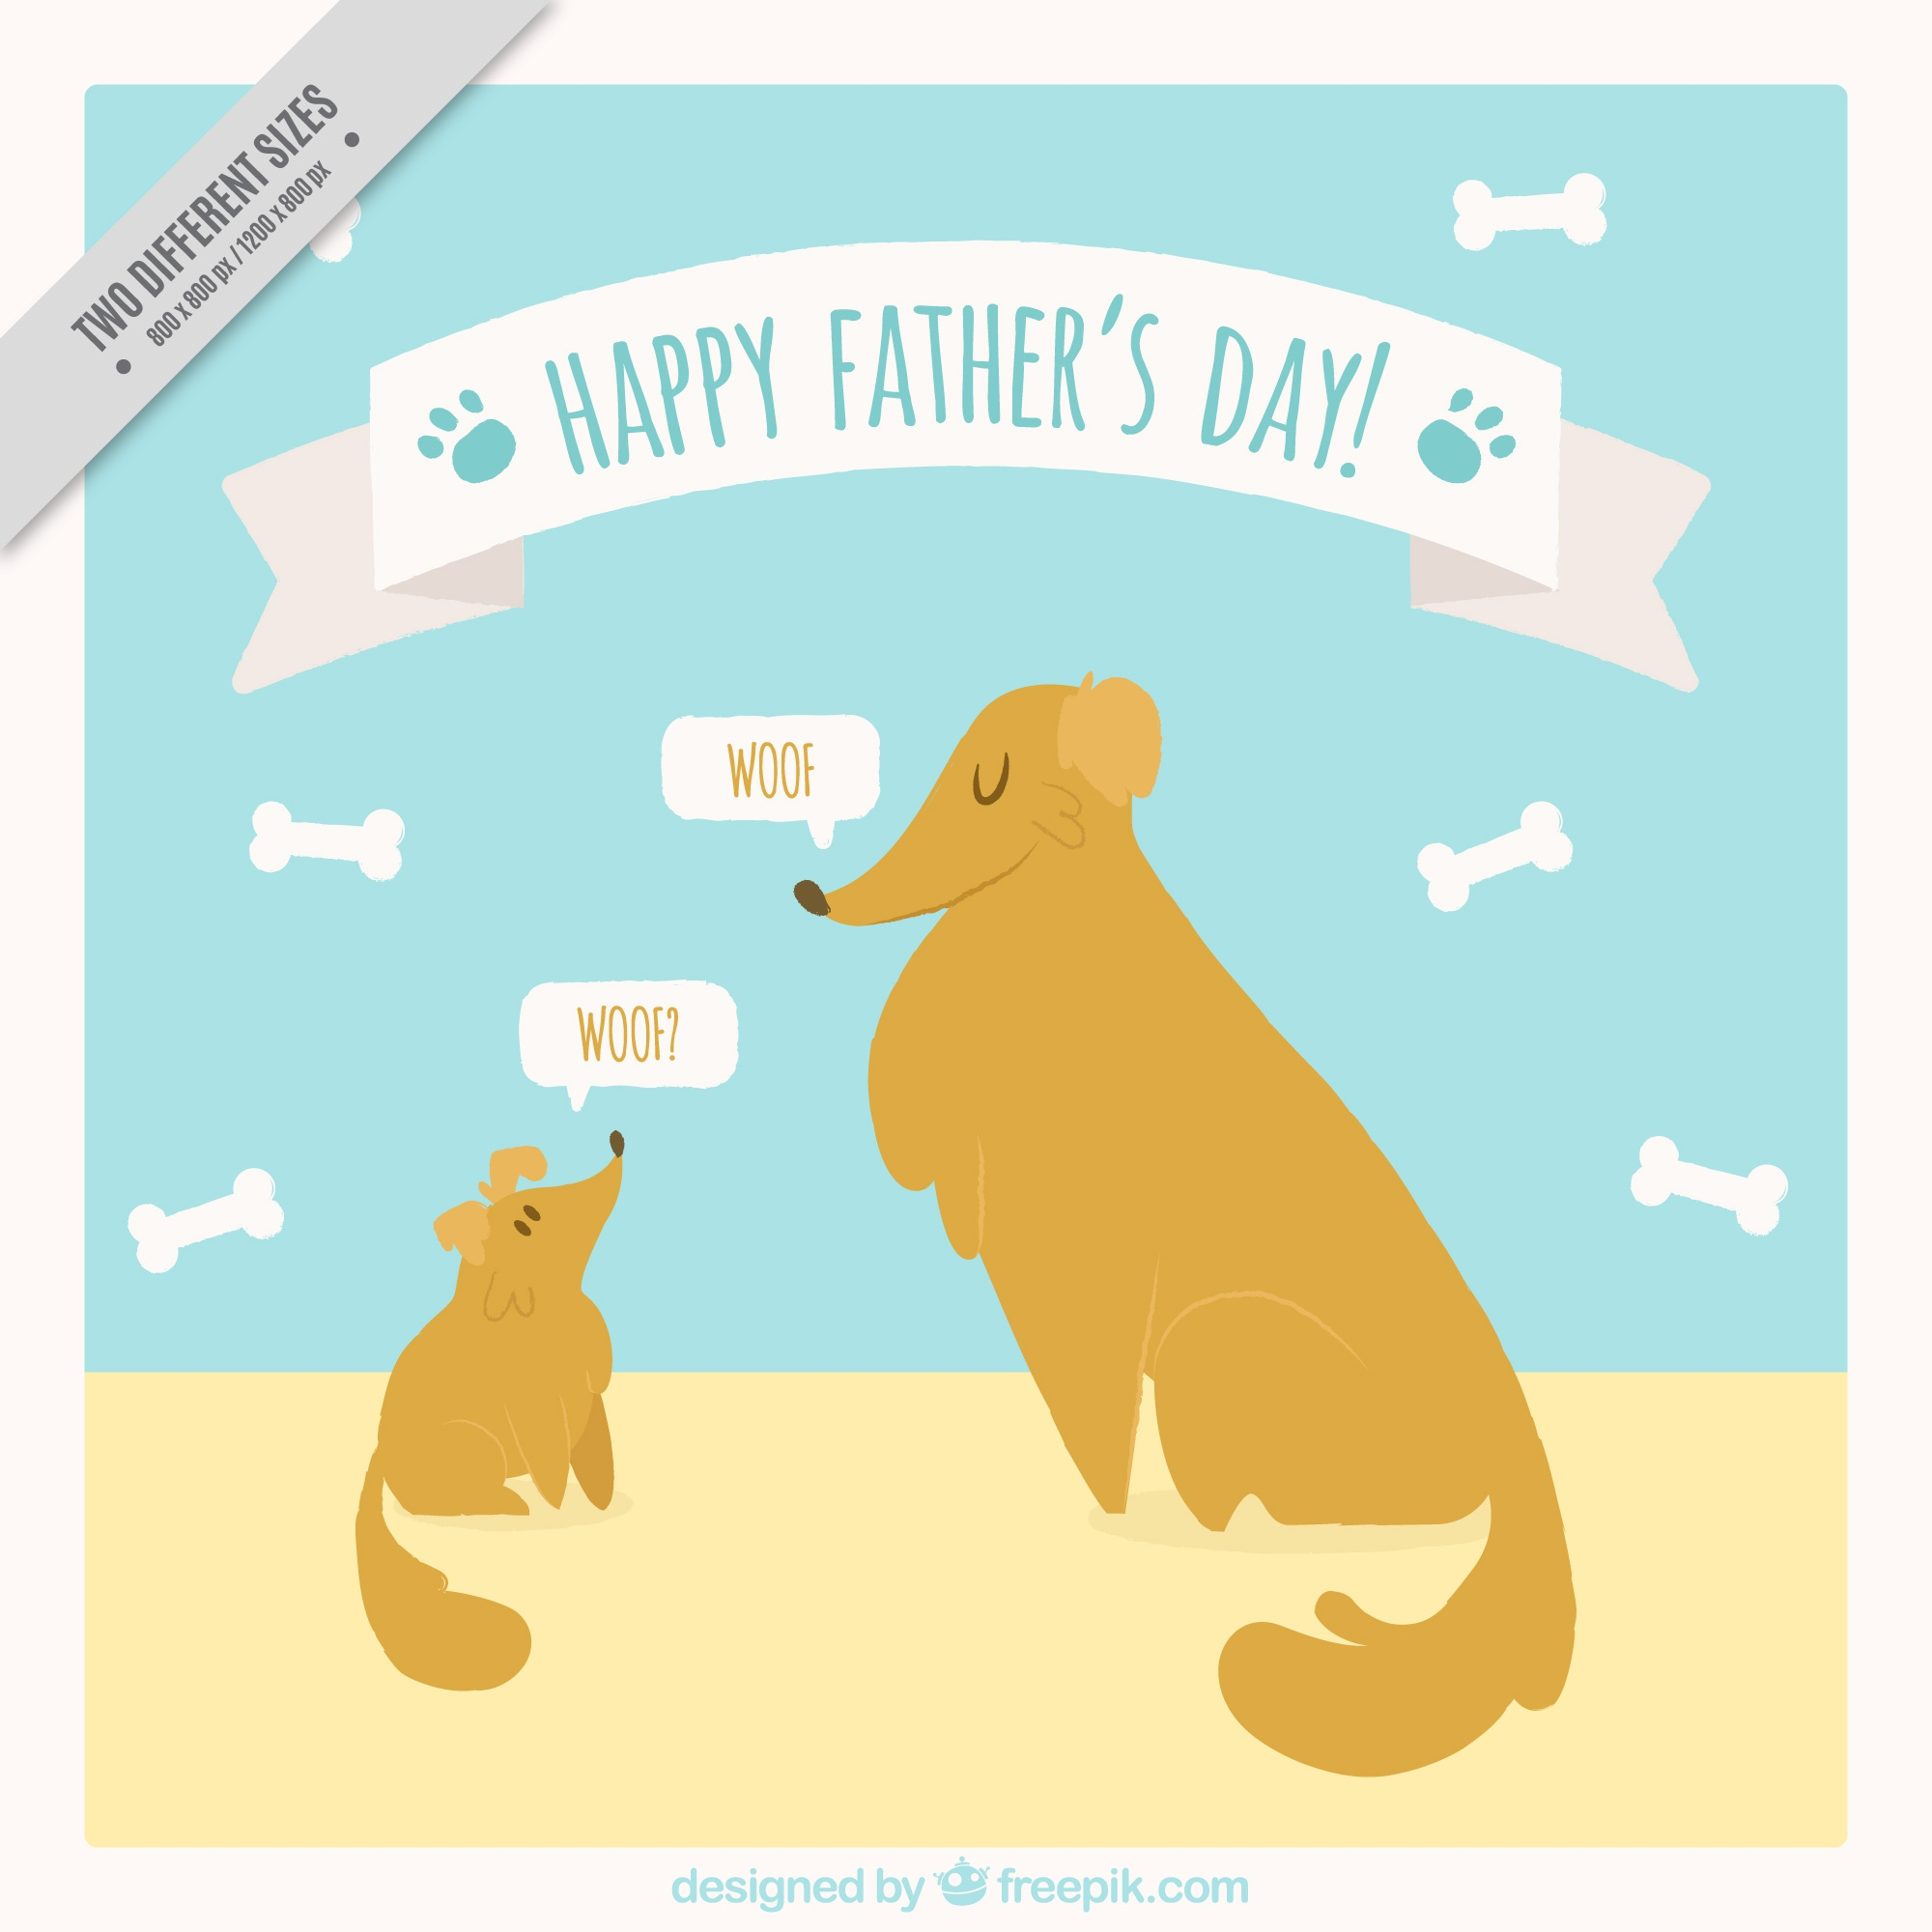 Father's day greeting card with two dogs